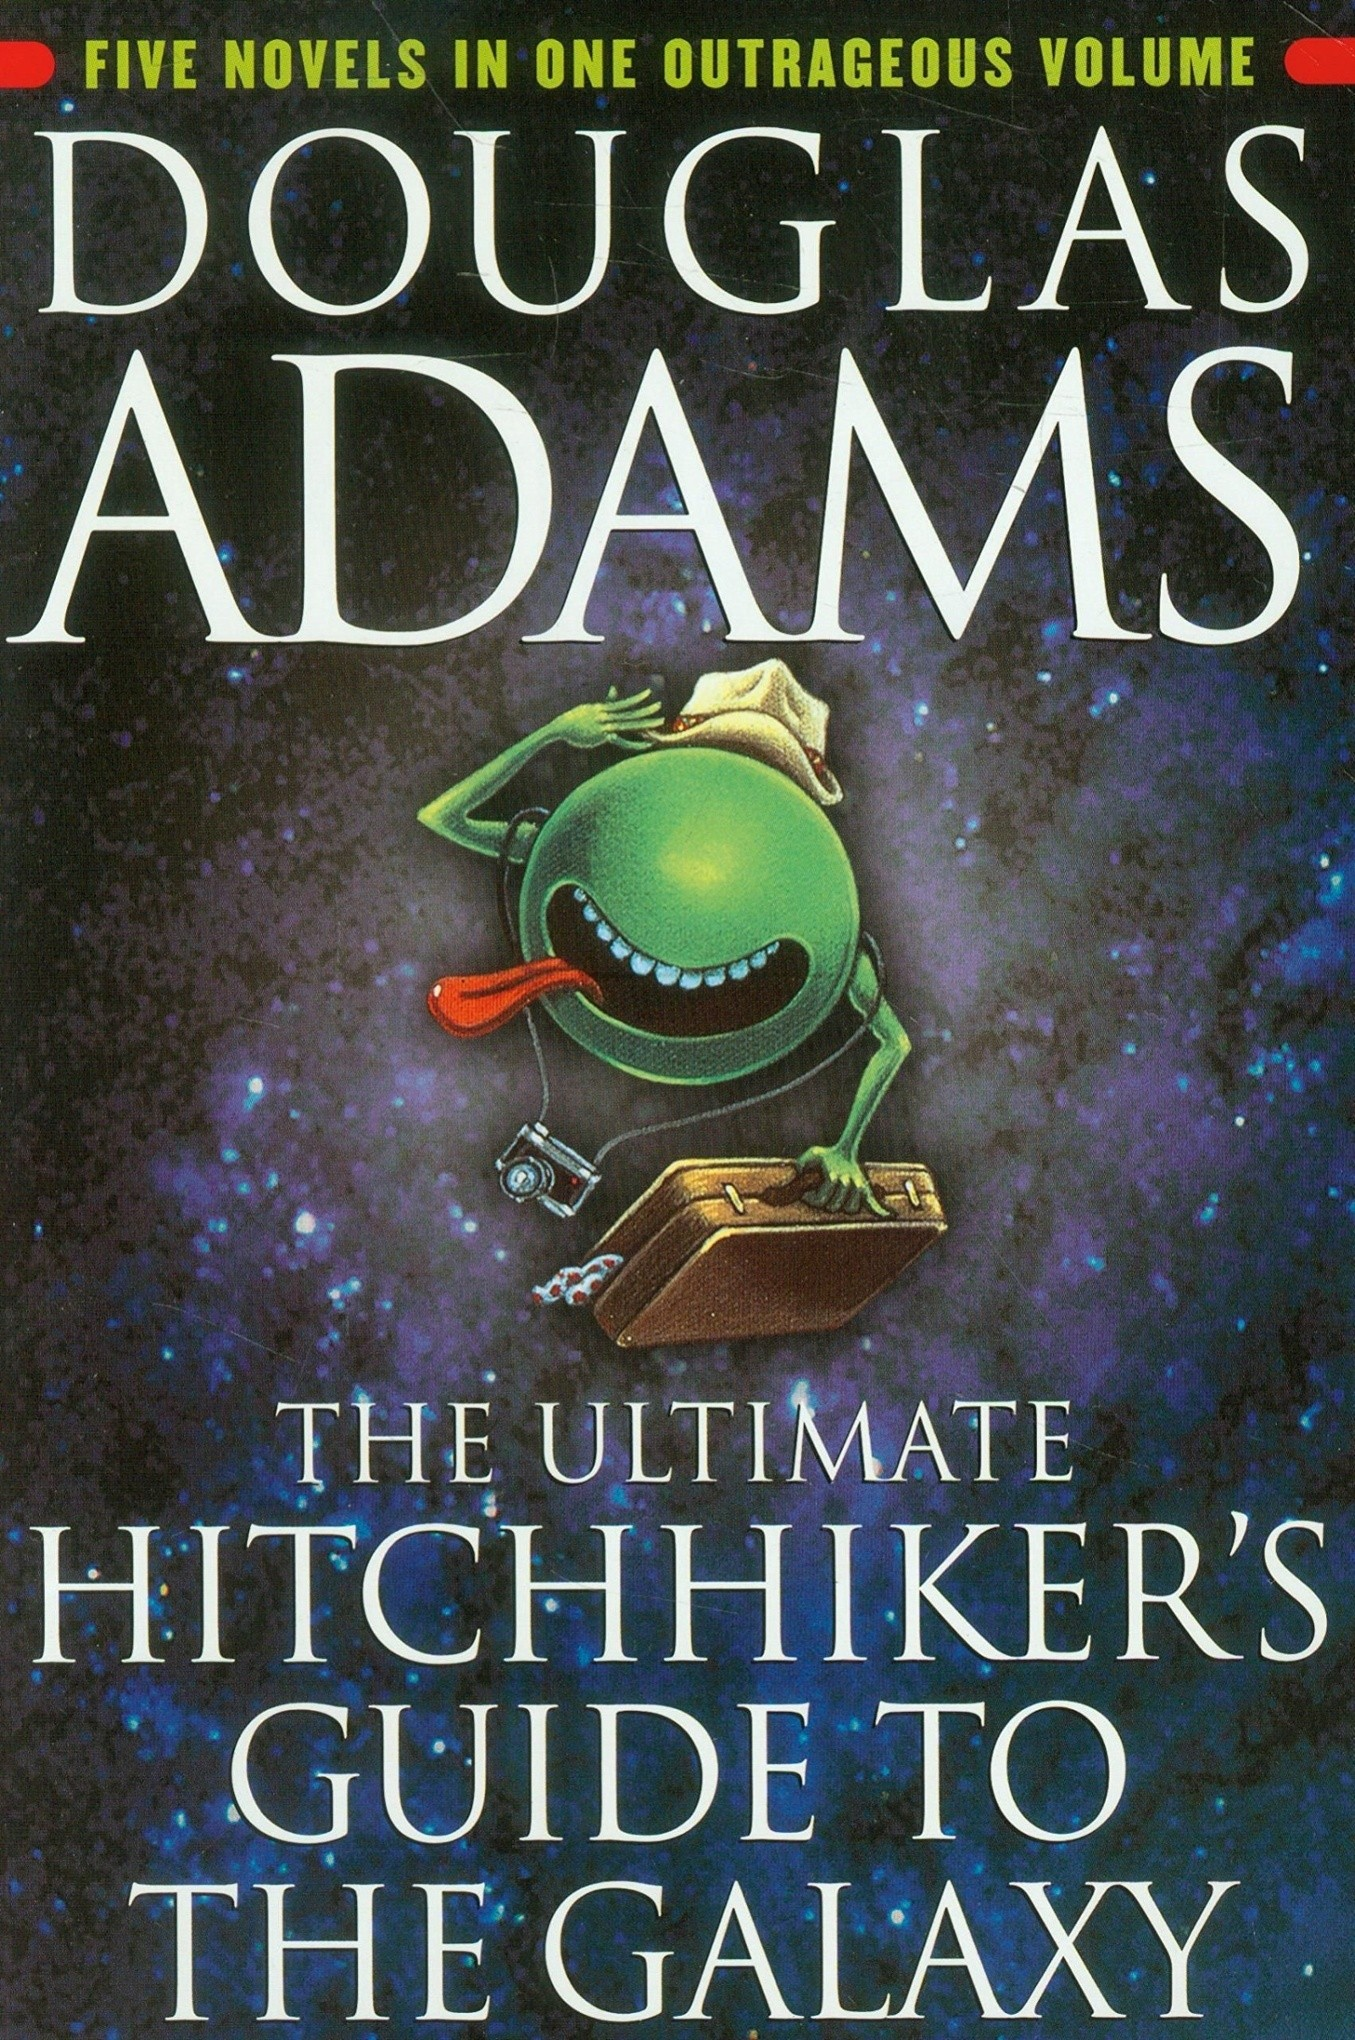 The Hitchhiker's Guide to the Galaxy by Douglas Adams – review